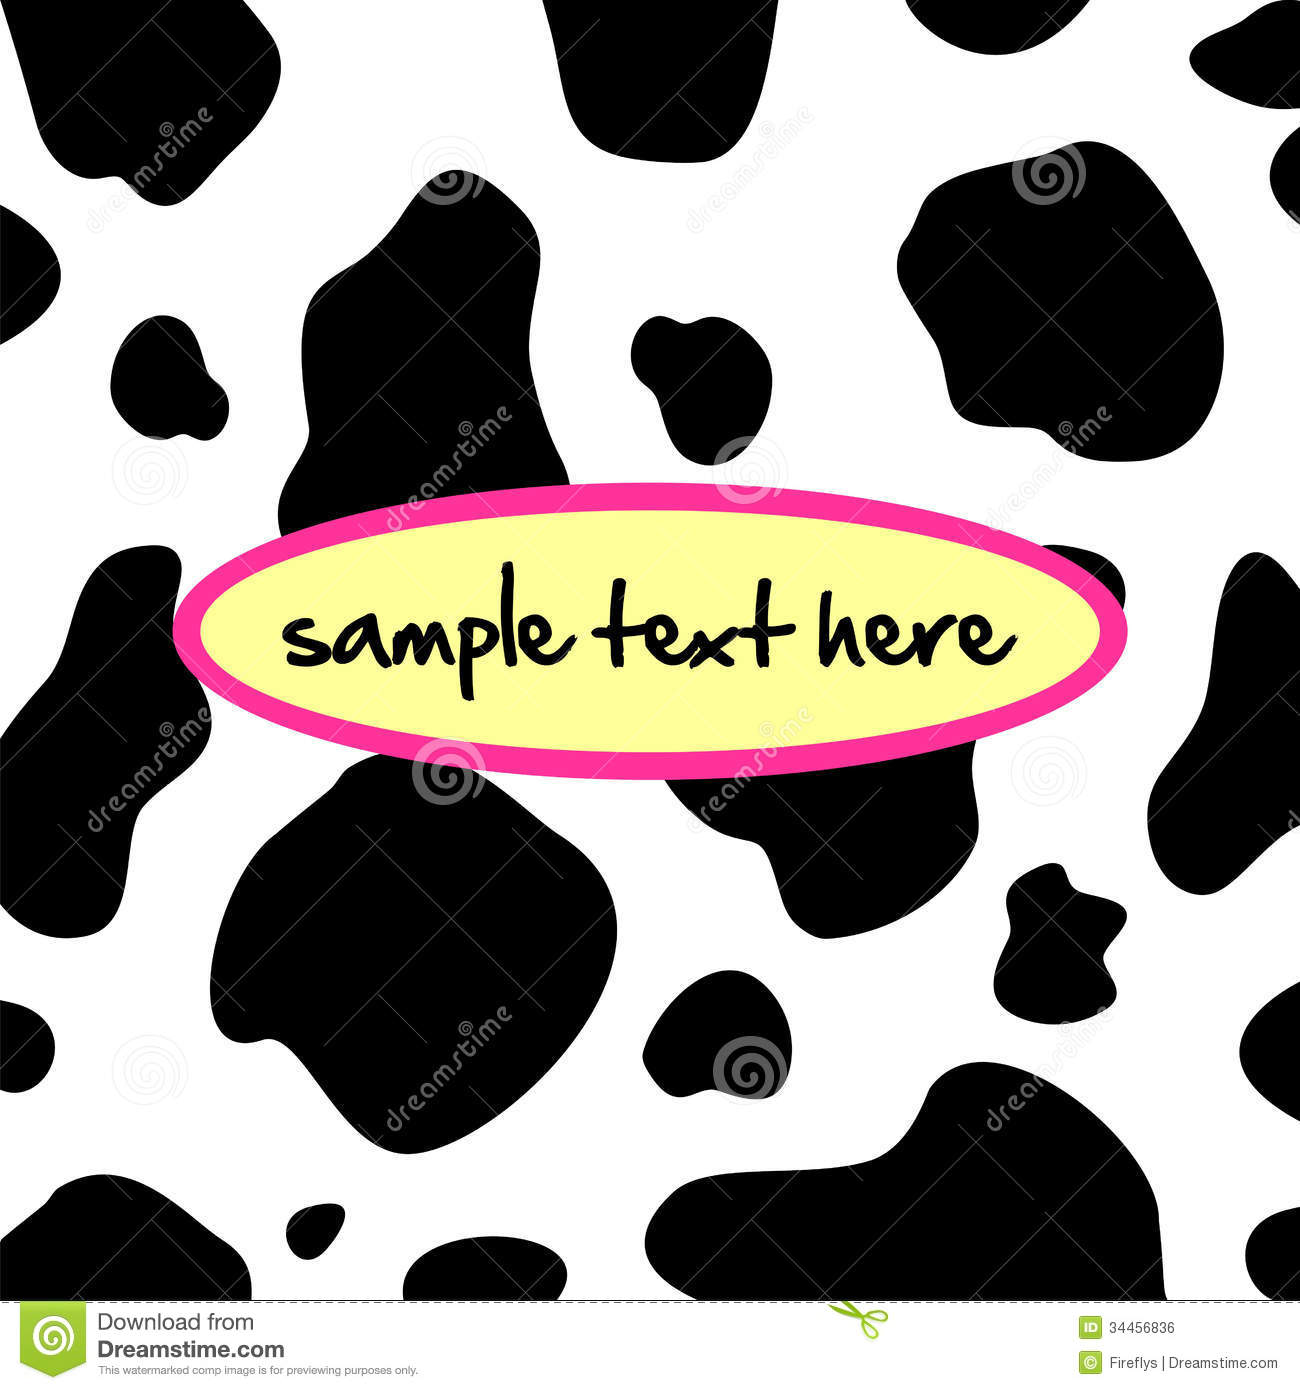 Black Camouflage Wallpaper Cow Background Stock Vector Image Of Creative Design